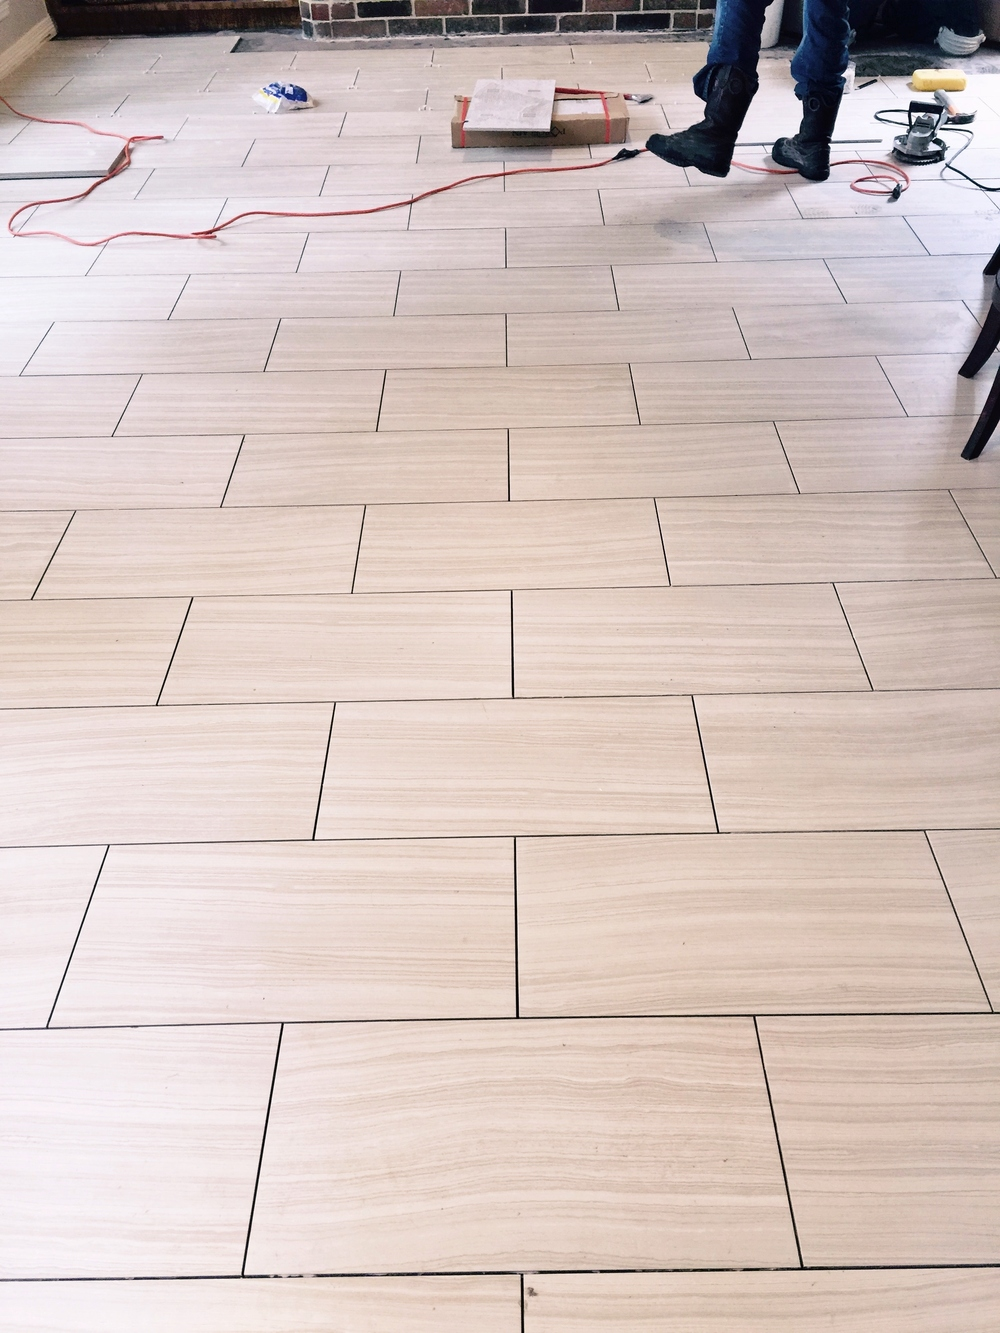 Merveilleux 12 X 24 Tile Floor Being Laid Across The Narrow Width Of The Room To Make